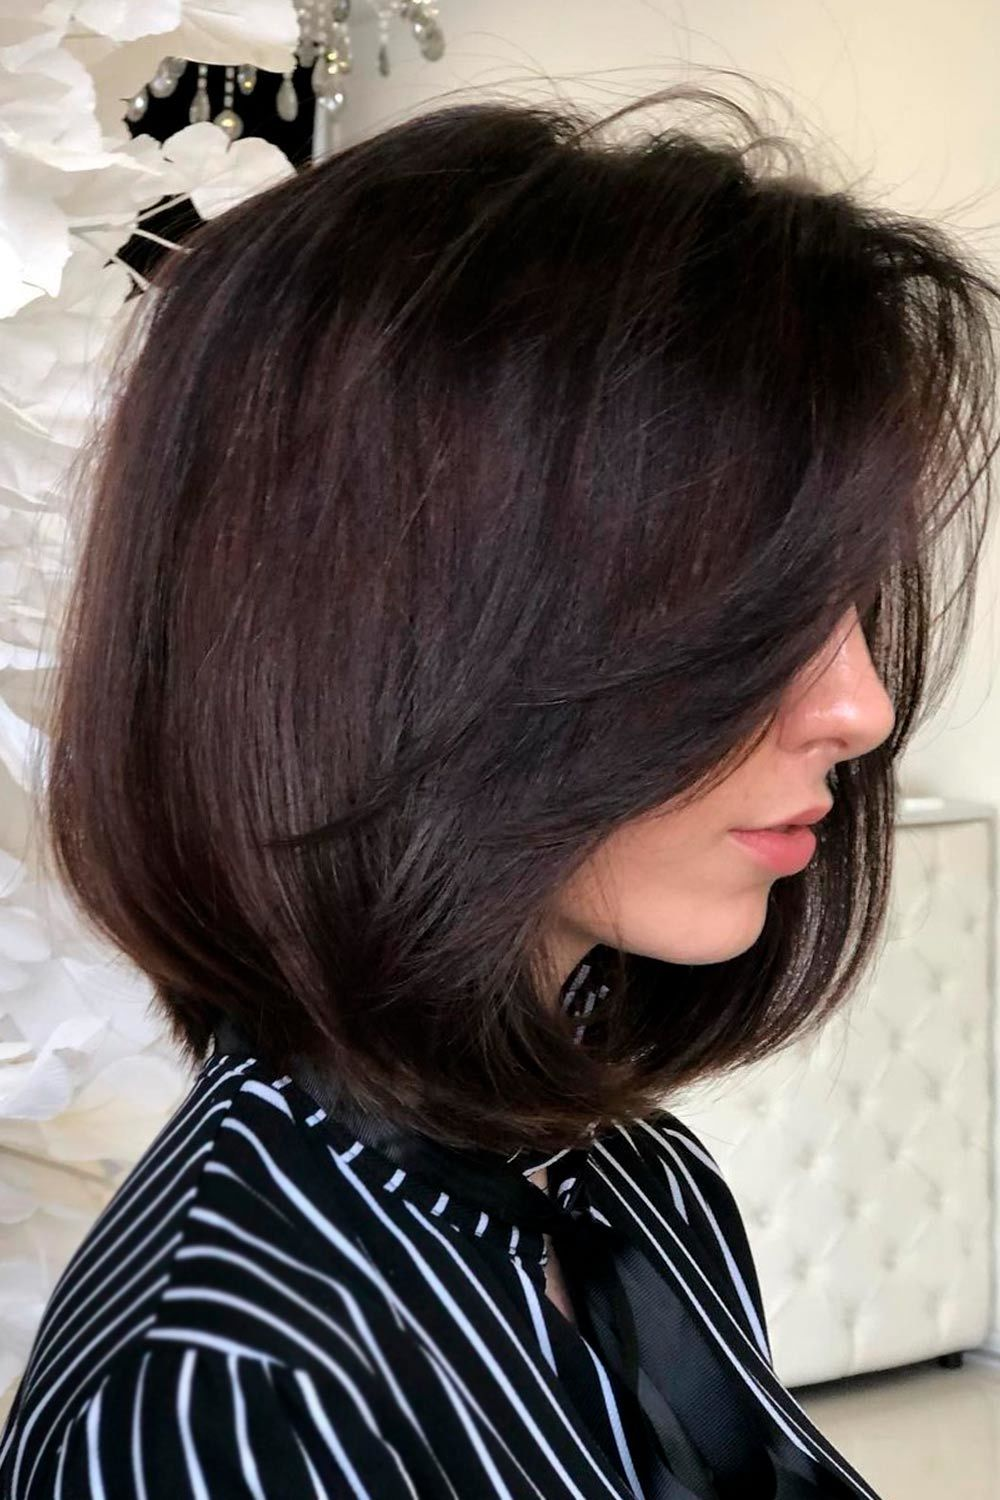 Flattering Short Hairstyles For Round Faces, short hairstyles for fat faces, haircuts for chubby faces